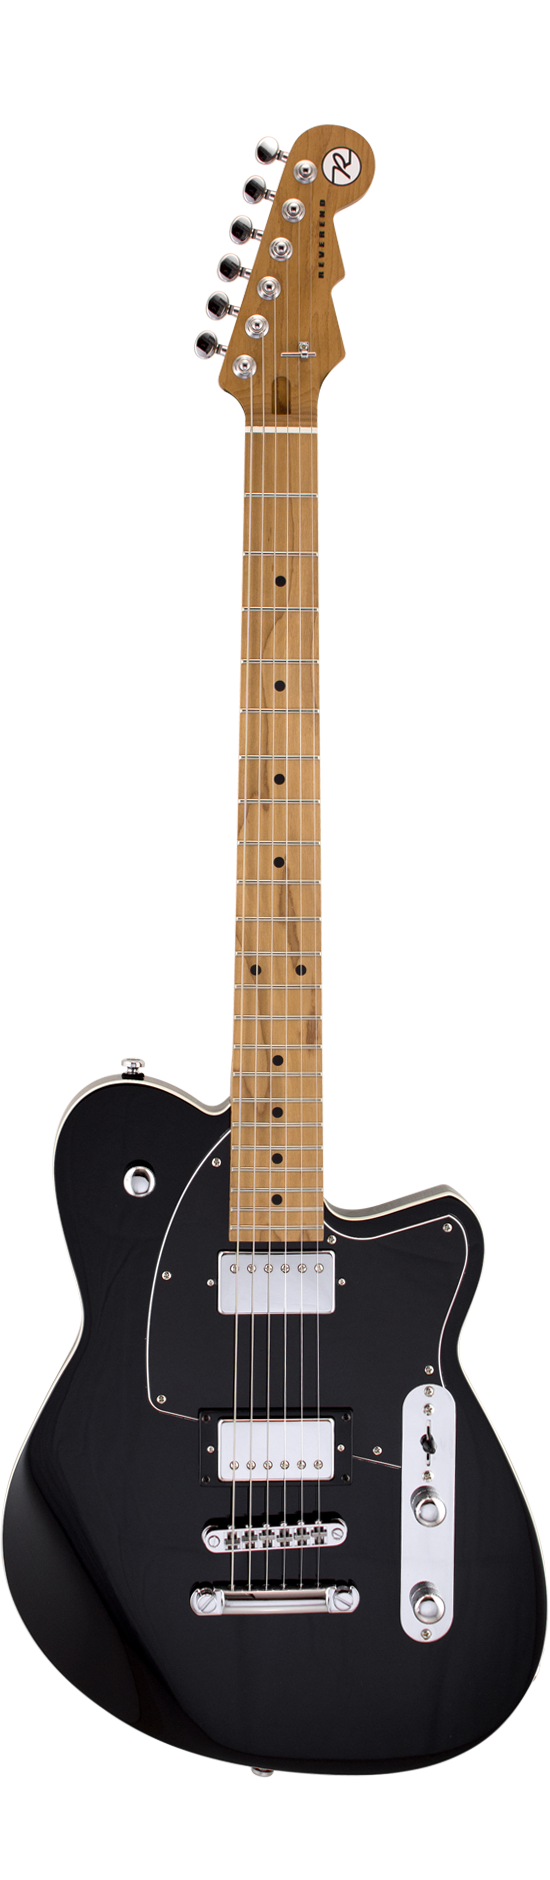 Reverend Guitars Charger HB